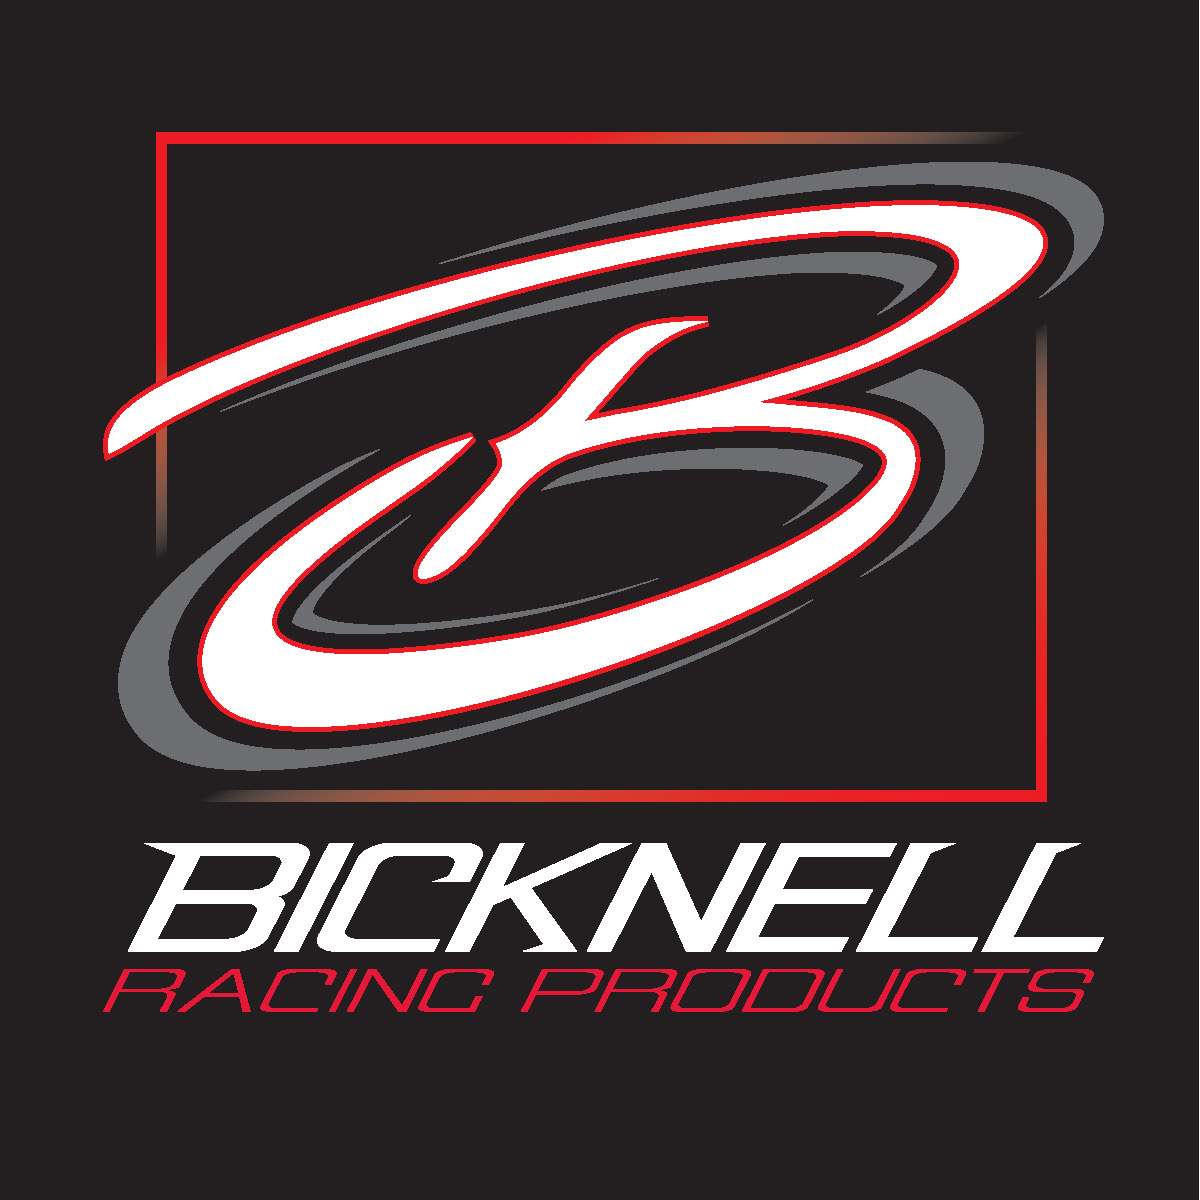 Bicknell Race Cars